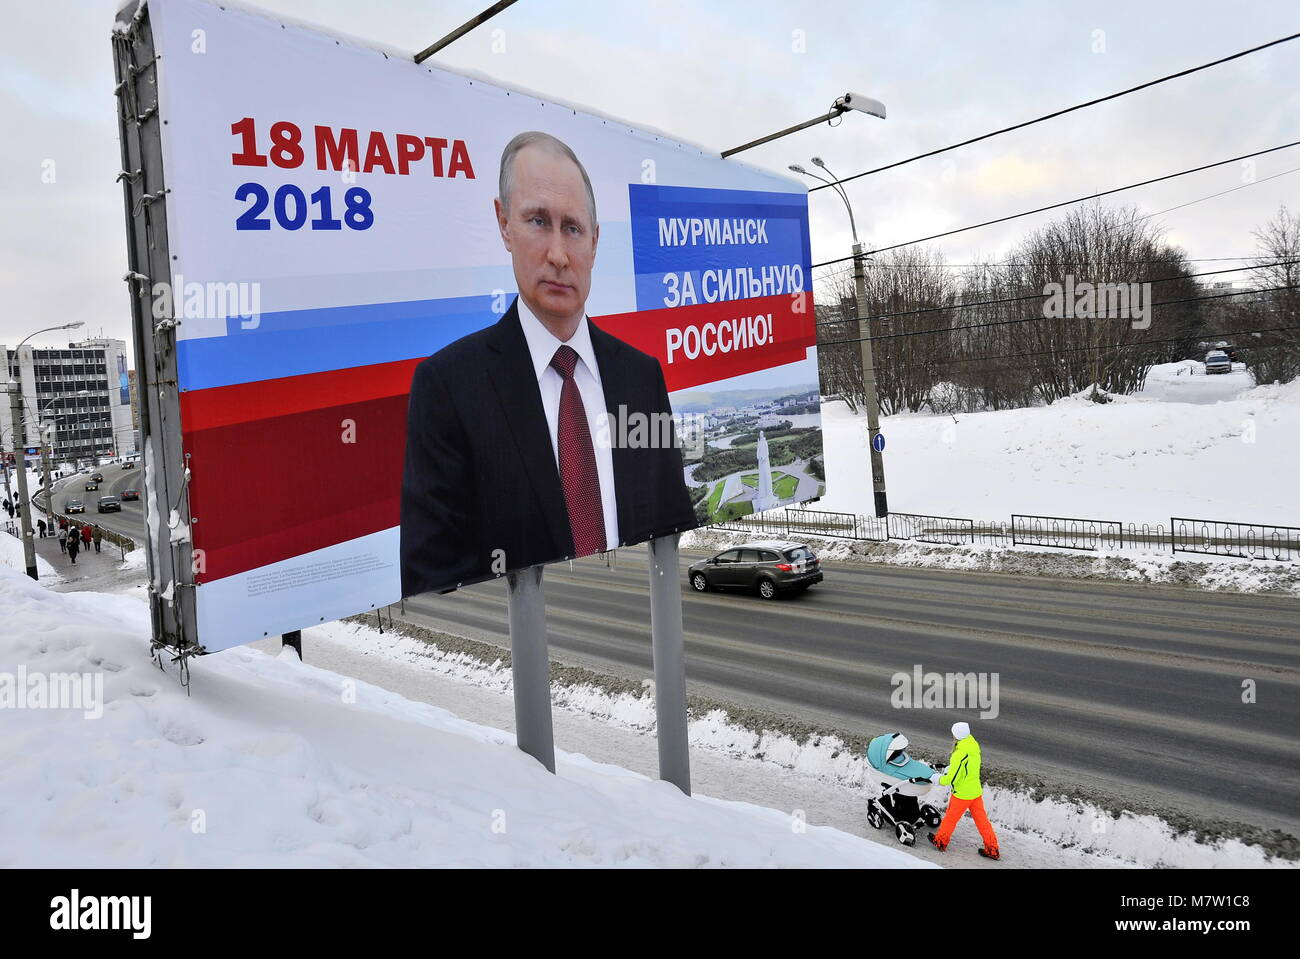 MURMANSK, RUSSIA - MARCH 12, 2018: A billboard poster promoting Russian President Vladimir Putin in a street. Putin - Stock Image